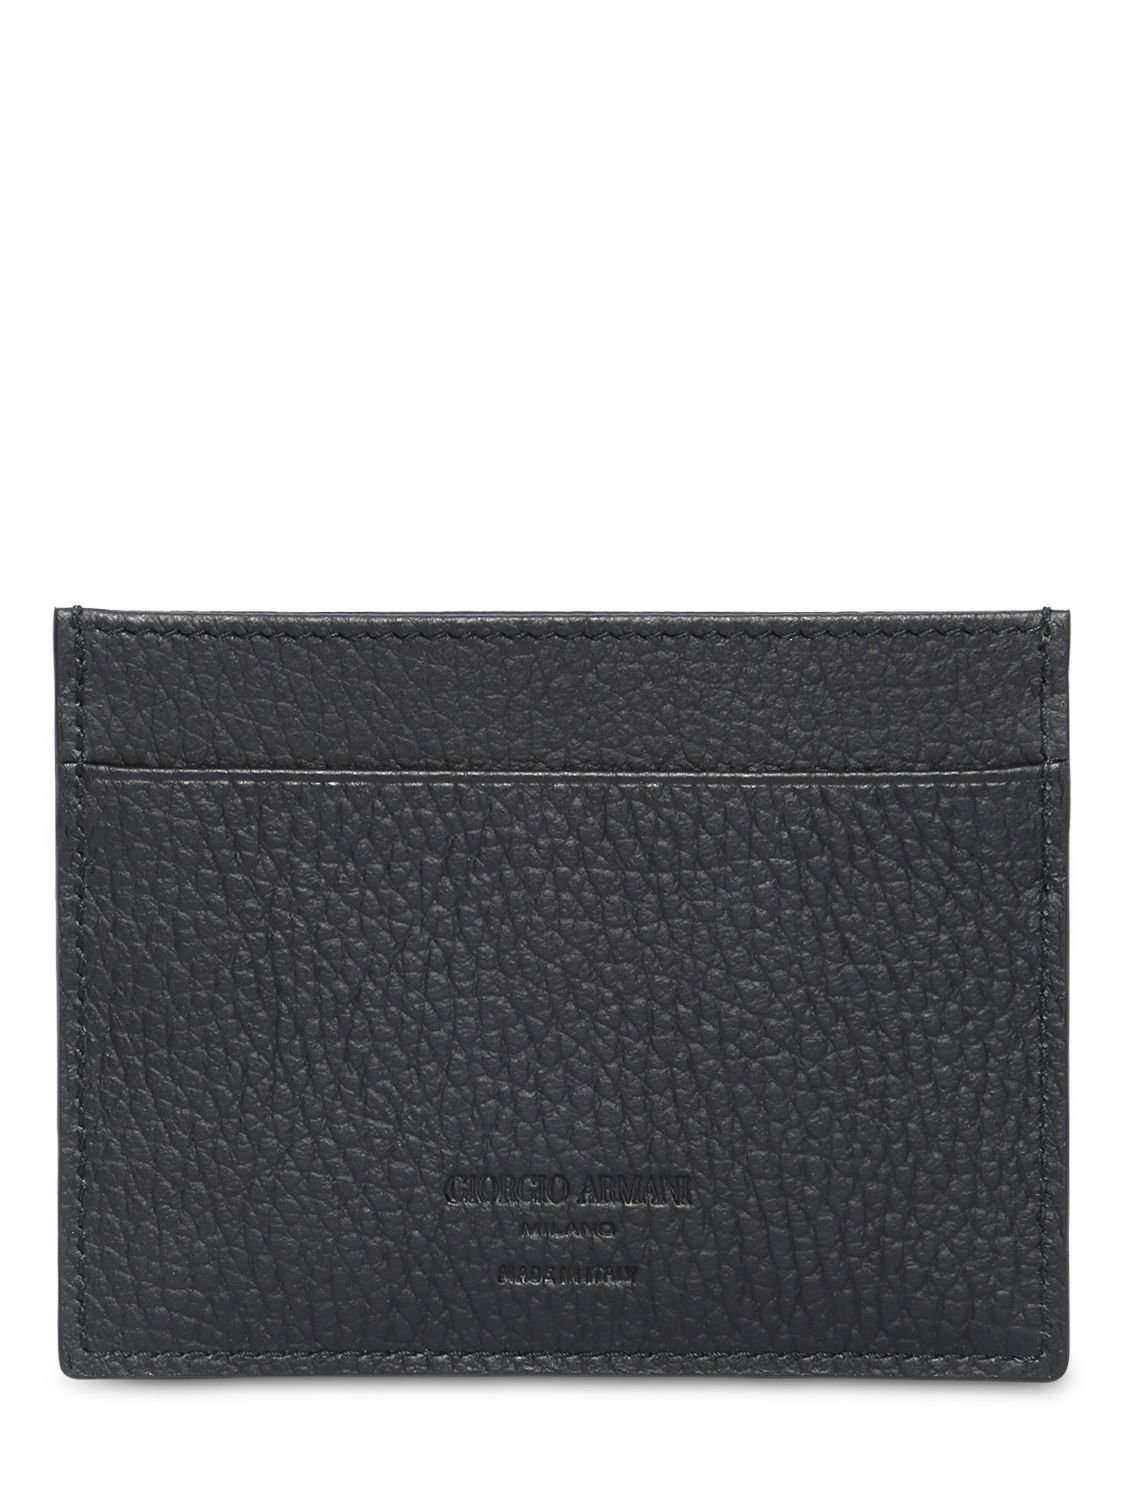 61446860bd Giorgio Armani Hammered Leather Credit Card Holder in Black for Men ...